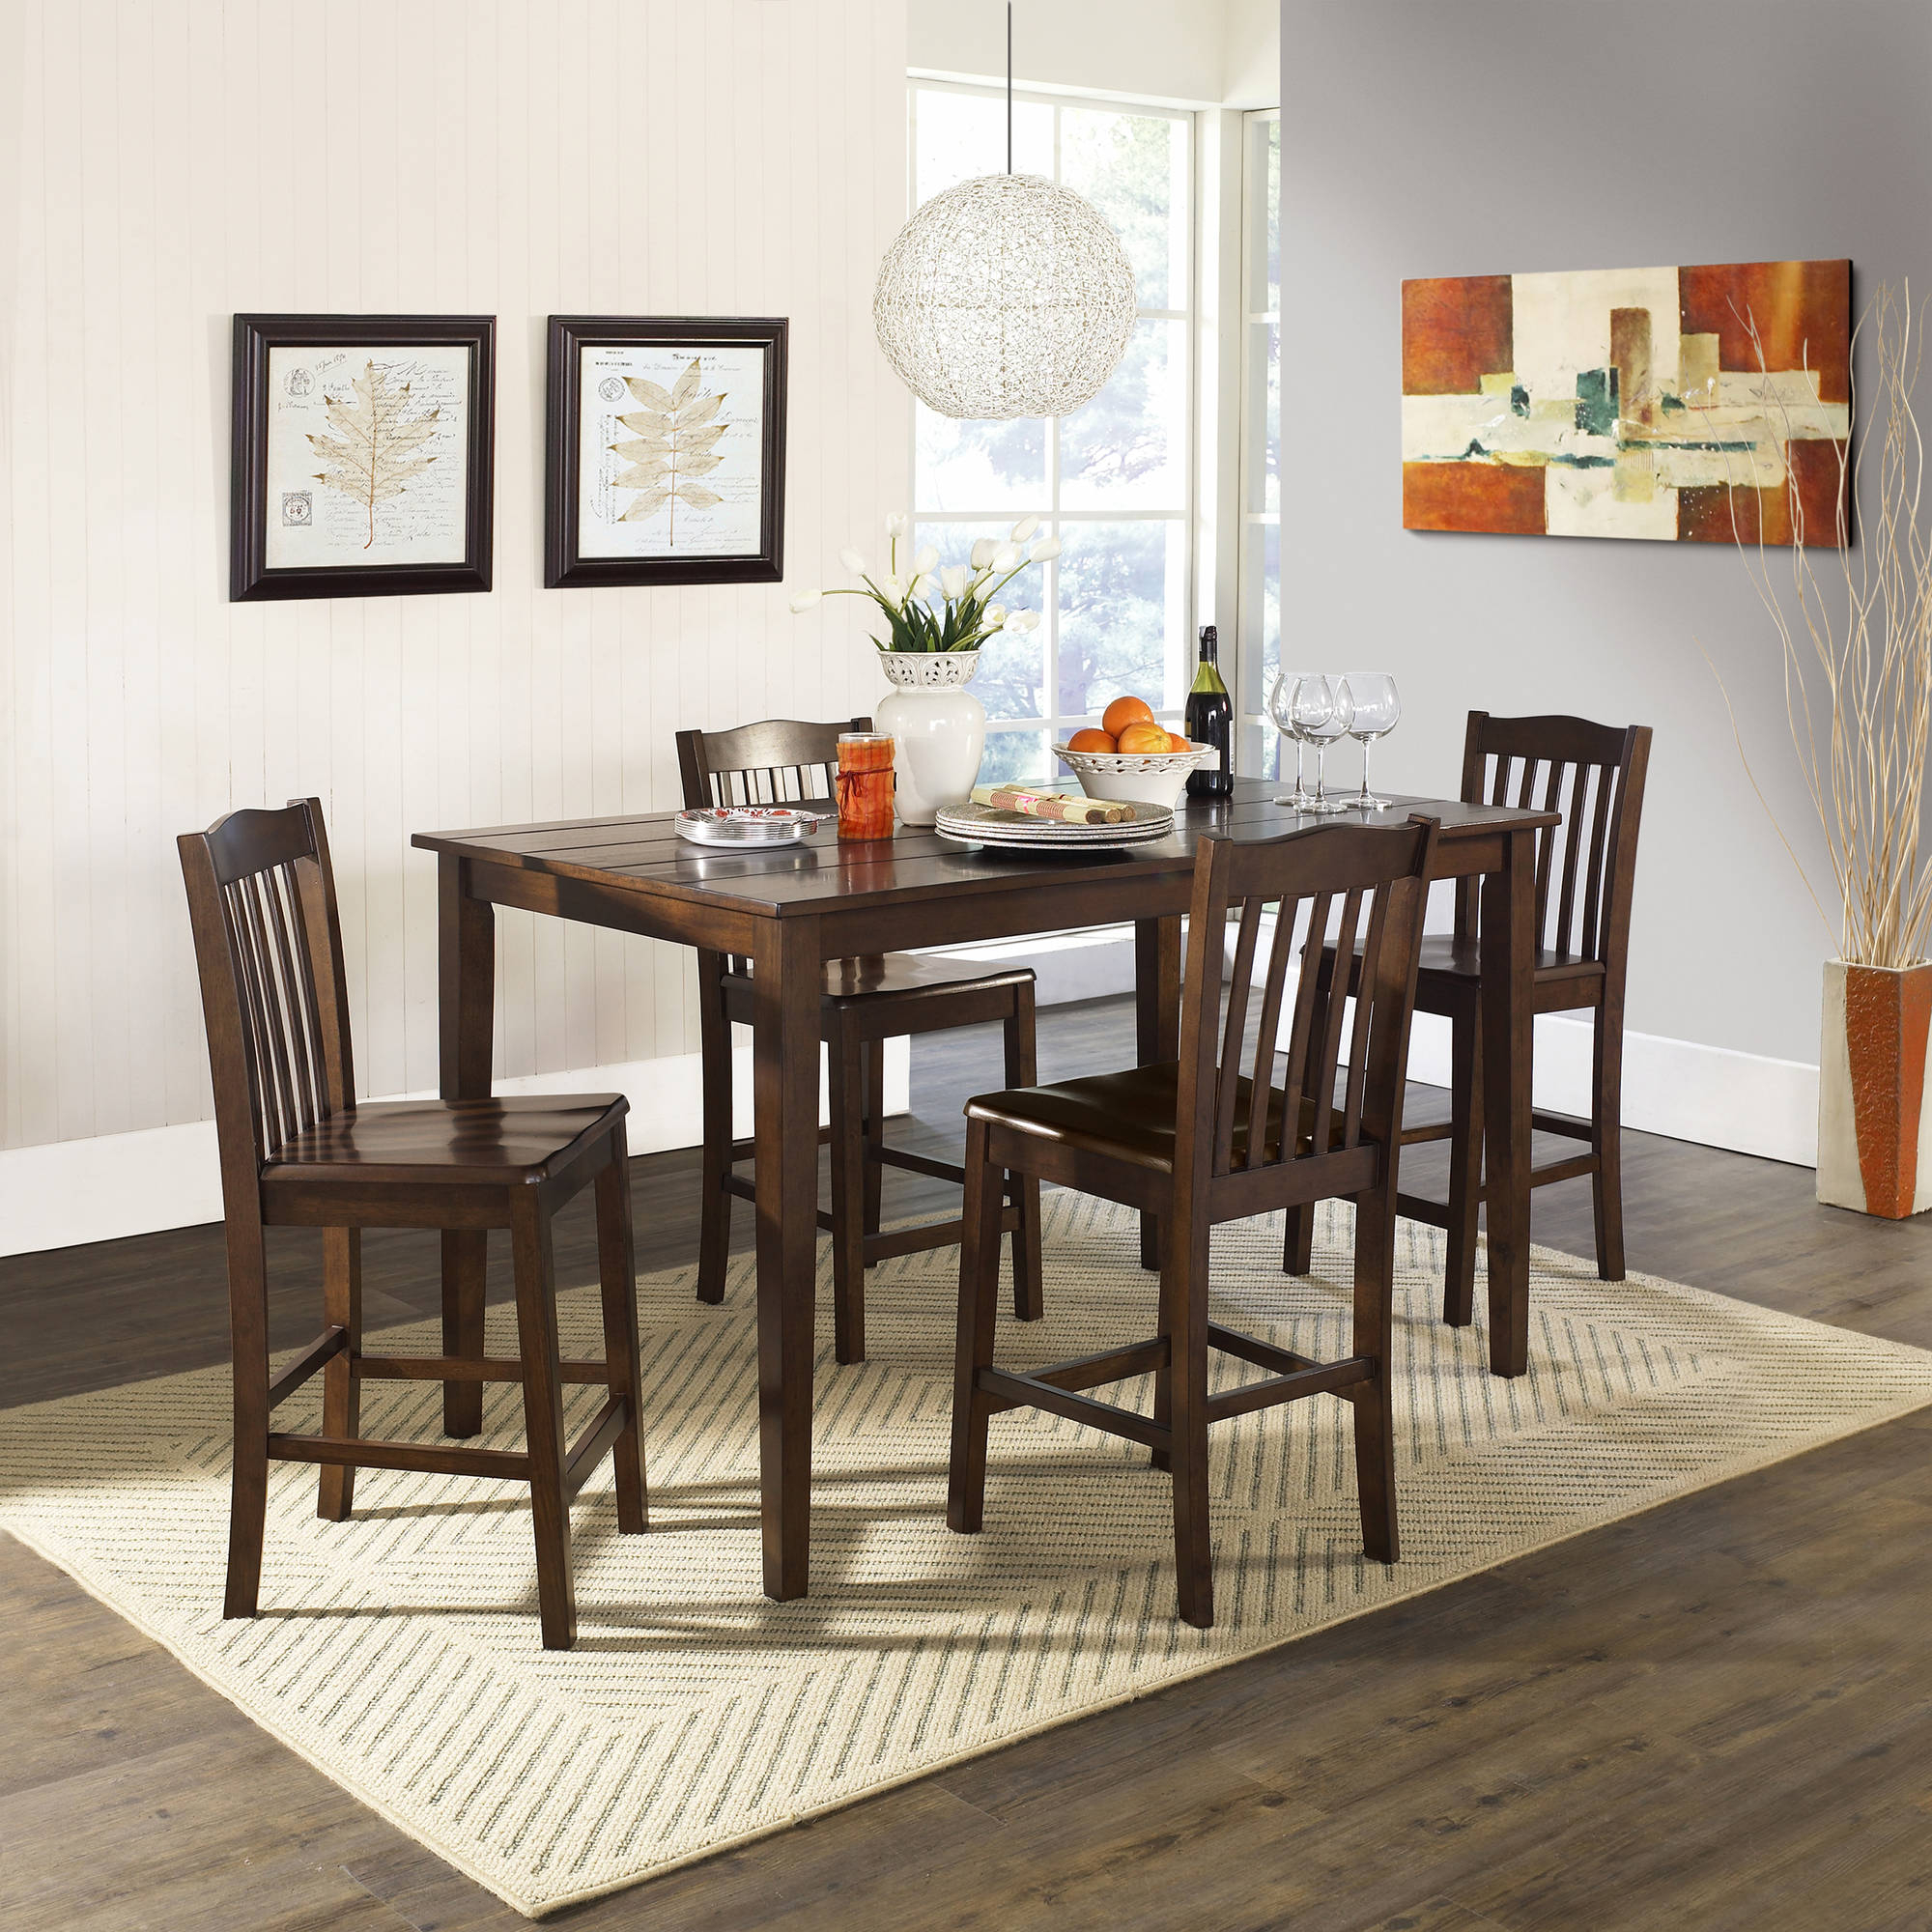 5 Piece Baxter Dining Set With Storage Ottoman, Multiple Colors With Most Popular Anette 3 Piece Counter Height Dining Sets (Photo 13 of 20)